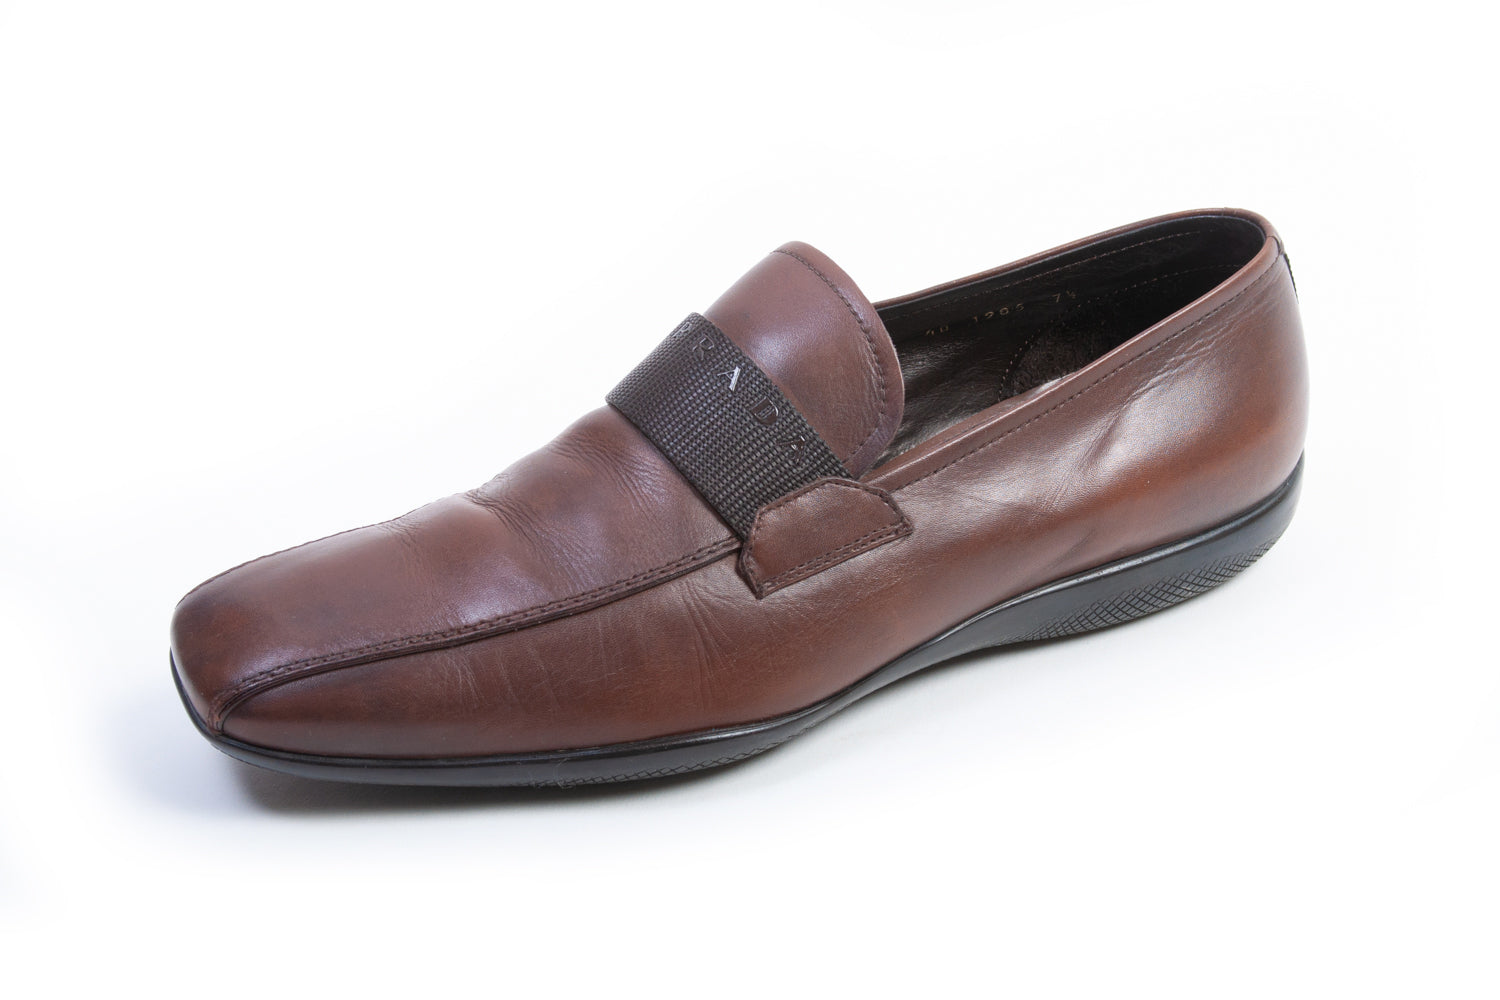 Prada Brown Bicycle Toe Loafers for Luxmrkt.com Menswear Consignment Edmonton